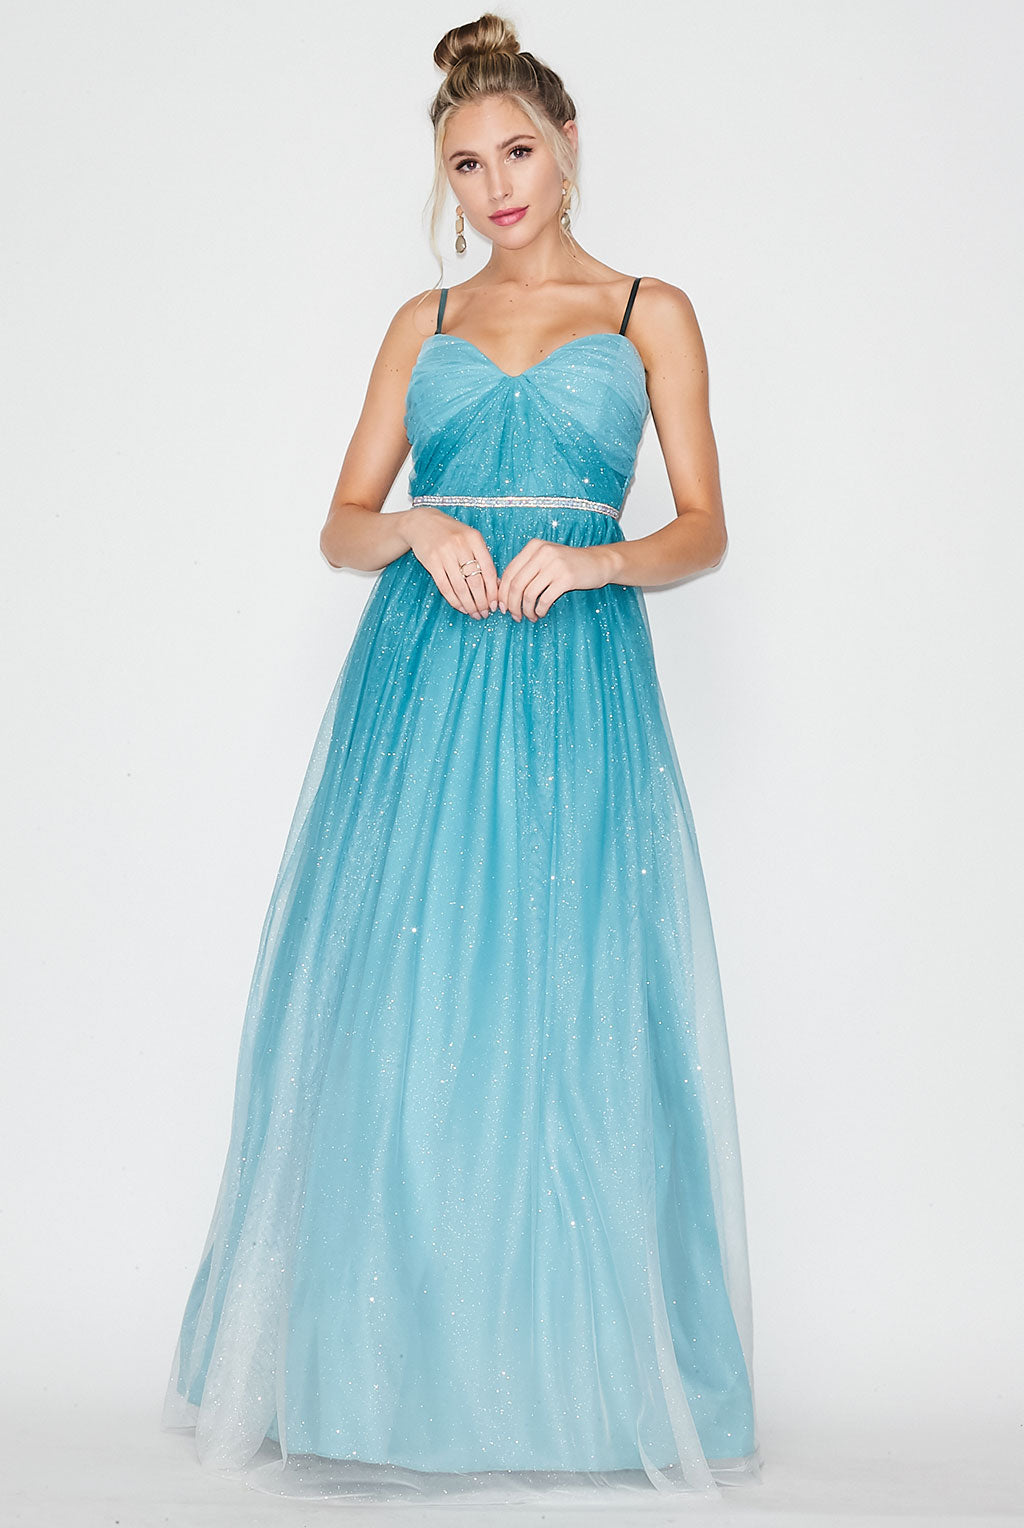 Teeze Me | Spaghetti Strap Mesh Ombre Glitter Ball Gown Prom | Sage Off White